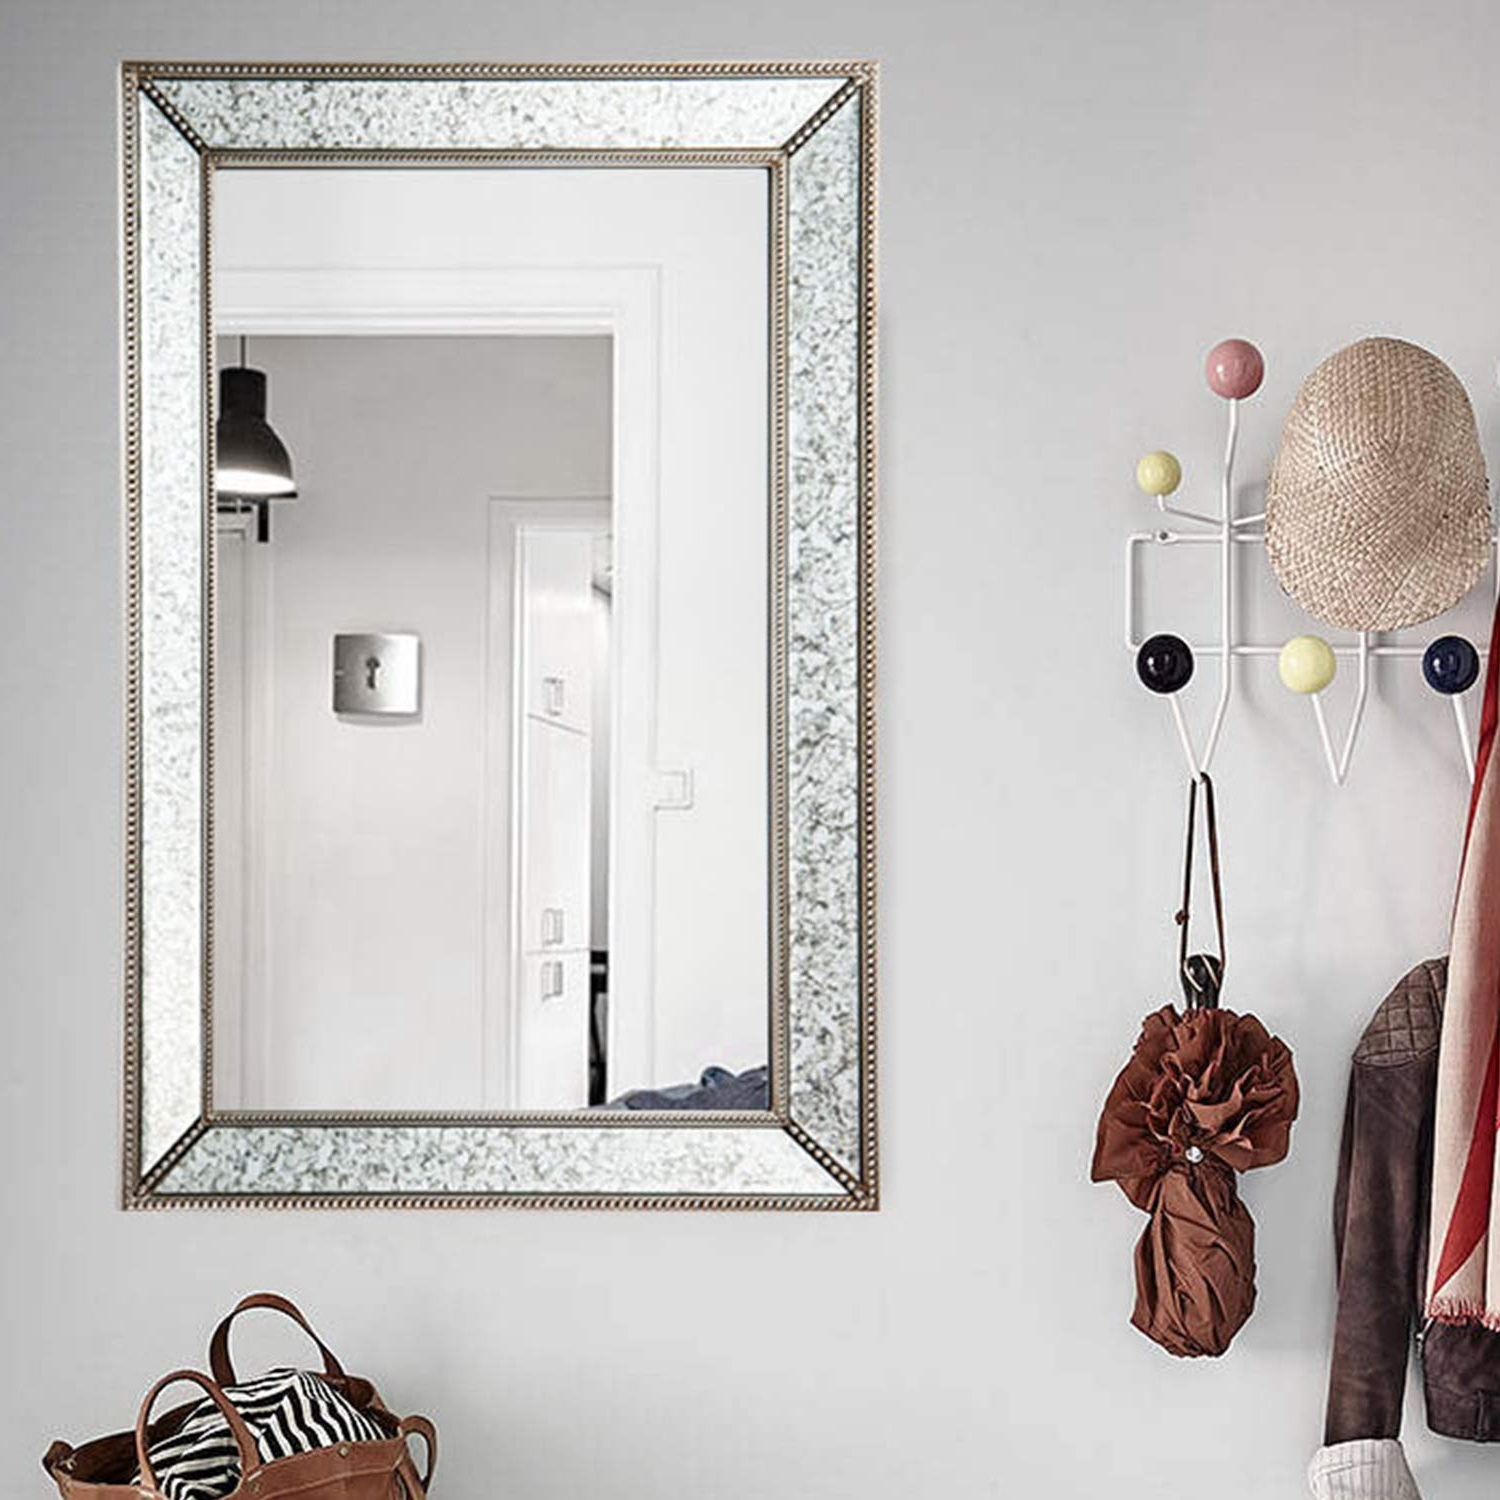 Fashionable Large Rectangle Antique Decorative Accent Wall Mounted Mirror In  Rectangular Shapes Angled Beveled Mirror Frame And Beaded Accents Living  Room Bedroom Inside Beaded Accent Wall Mirrors (View 9 of 20)